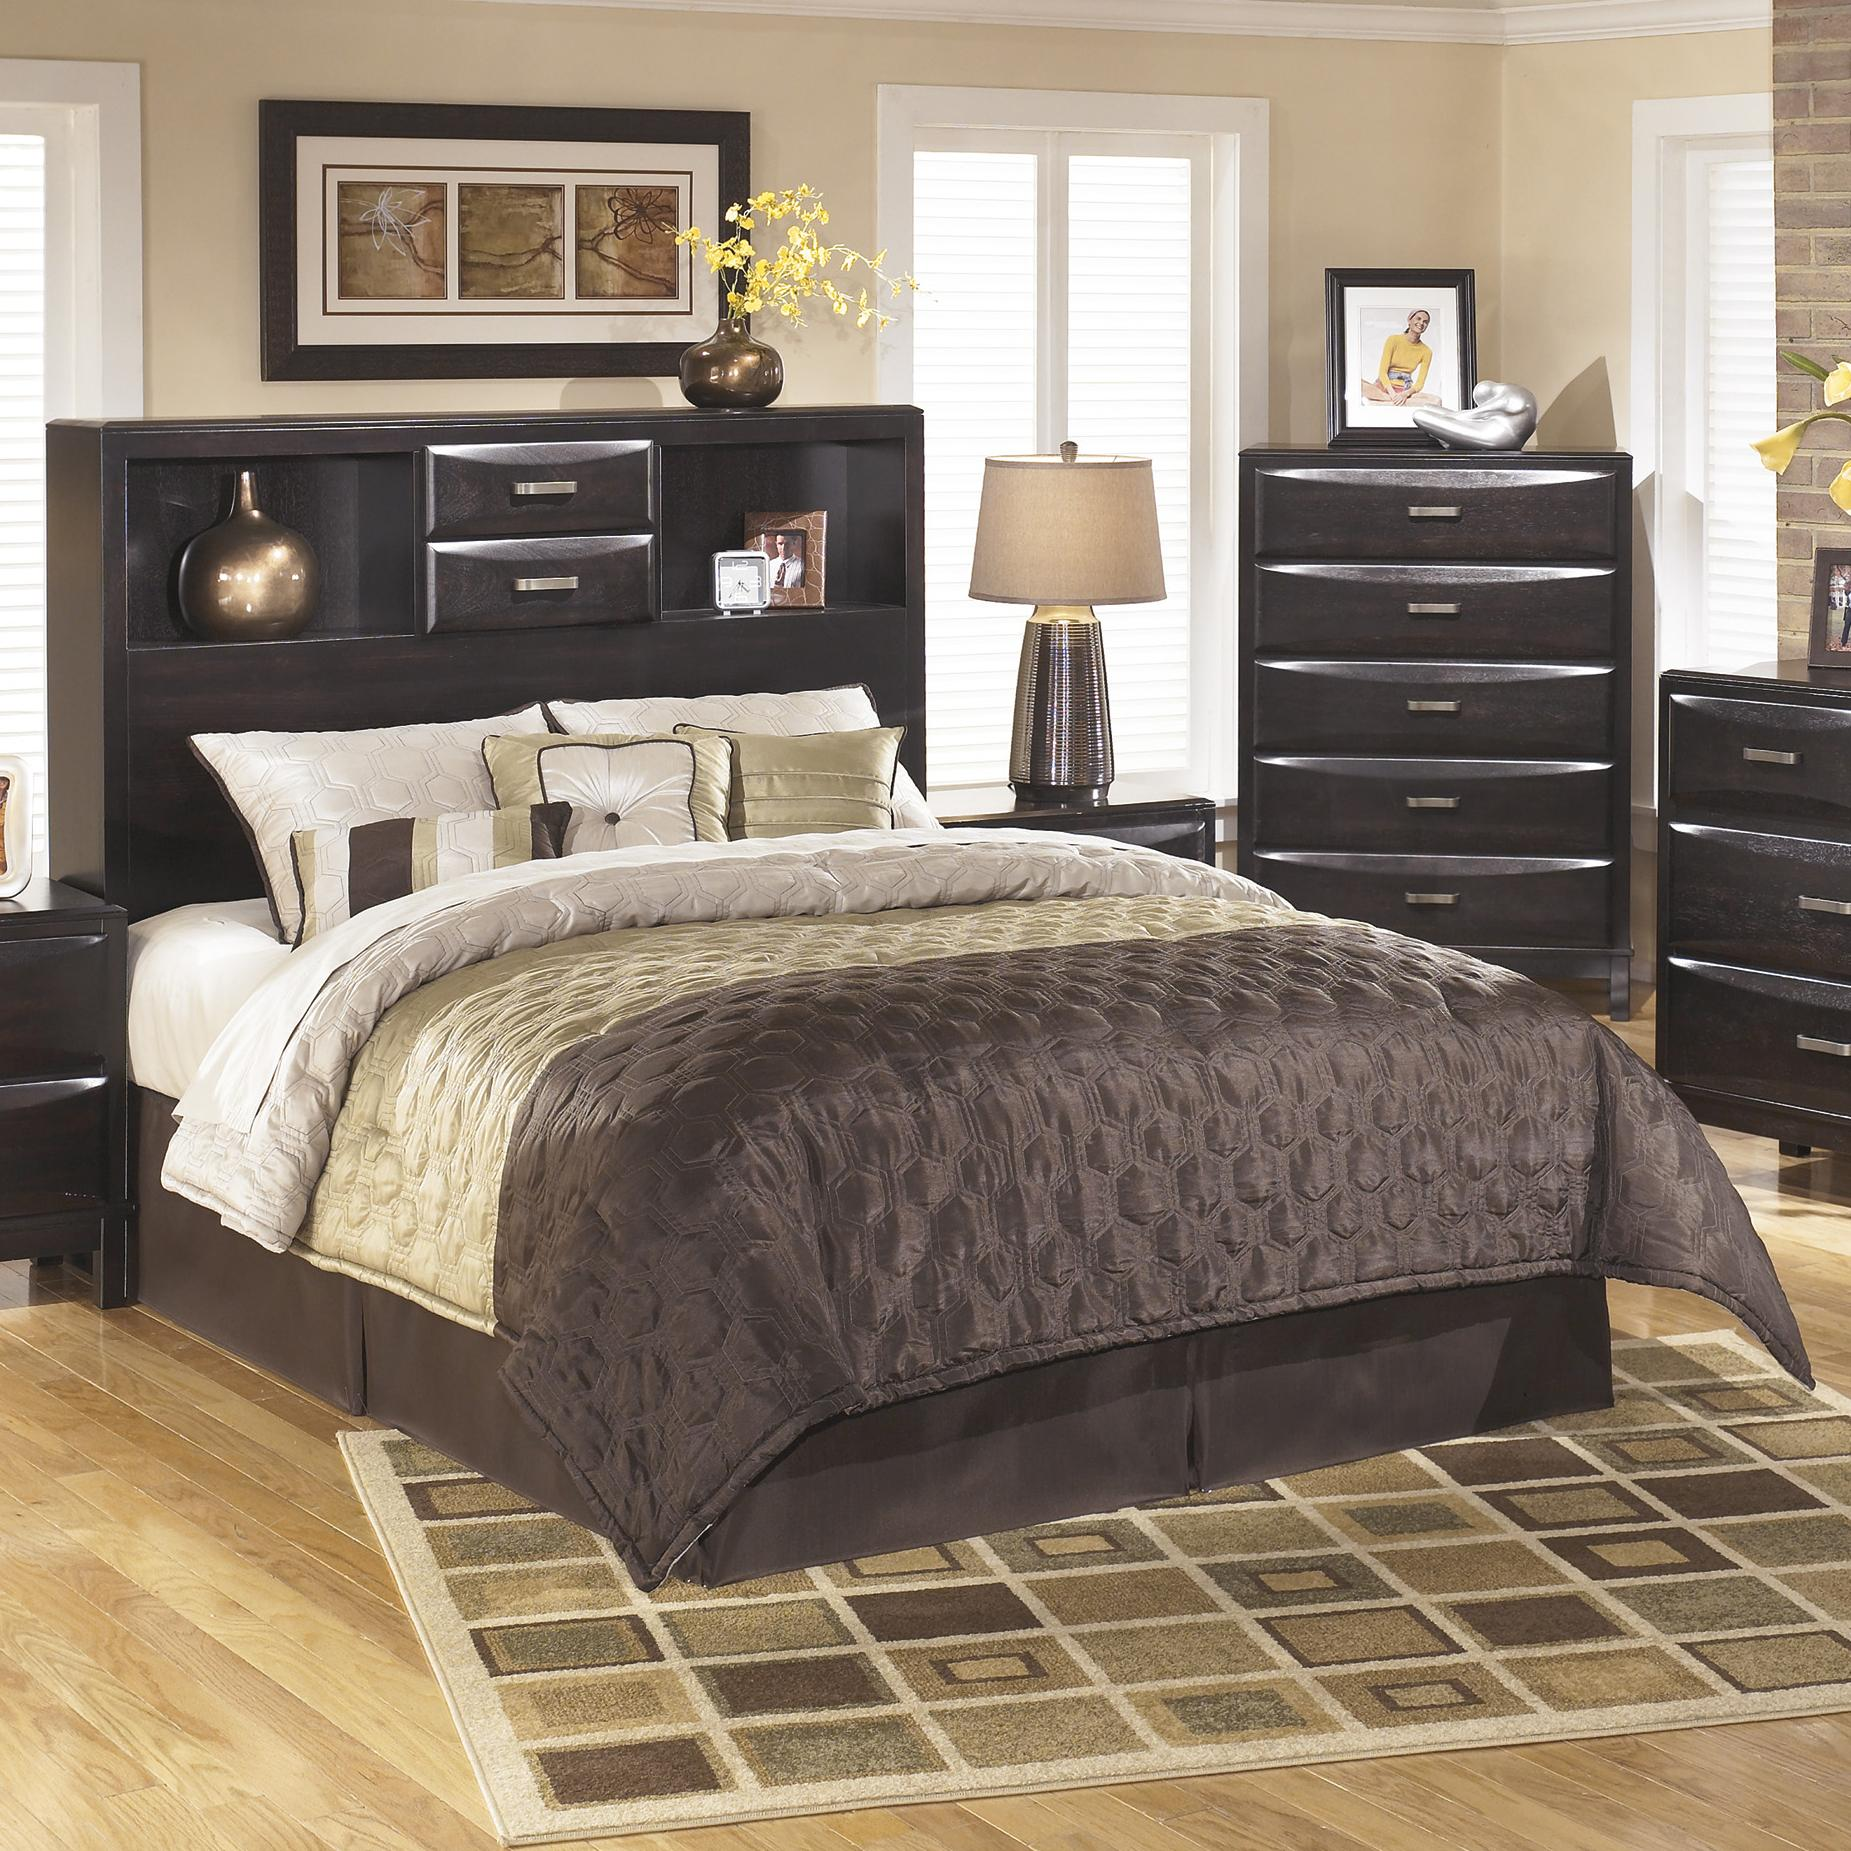 Ashley Furniture Kira King/Cal King Storage Headboard - Item Number: B473-69